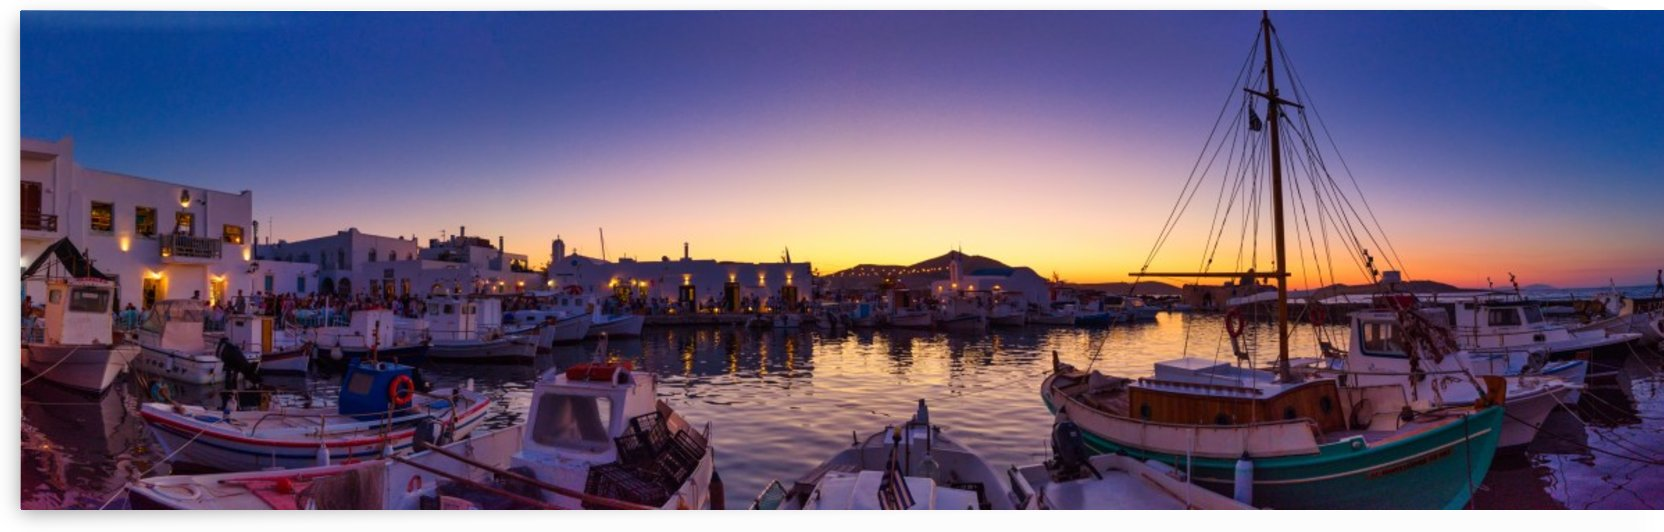 Picturesque view of harbor at sunrise by Pixelme ca